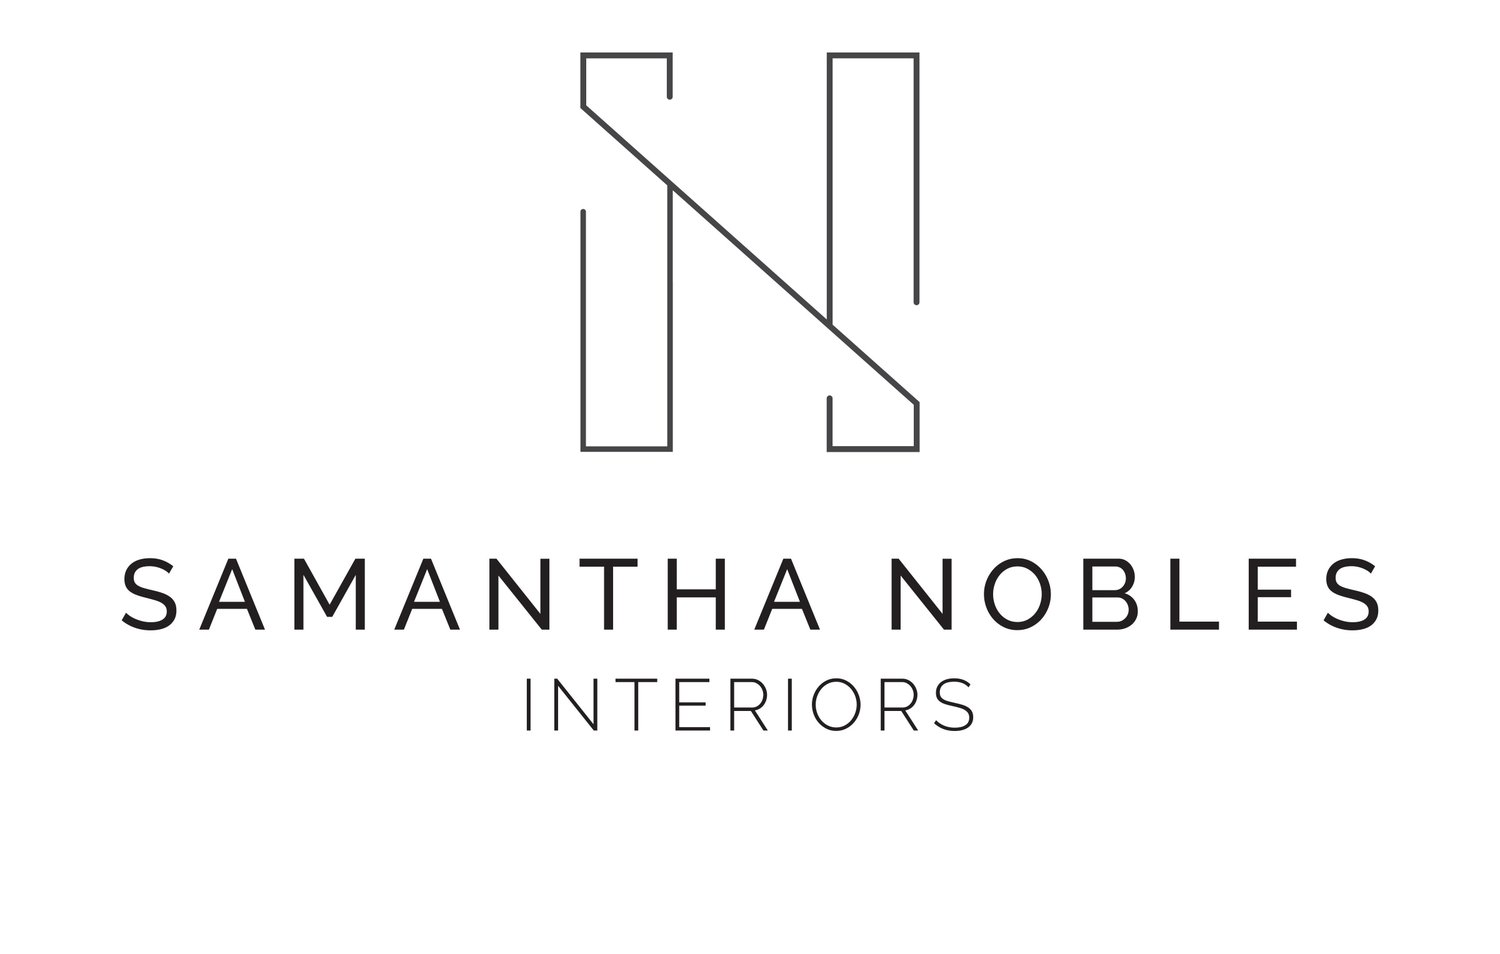 Samantha Nobles Interiors